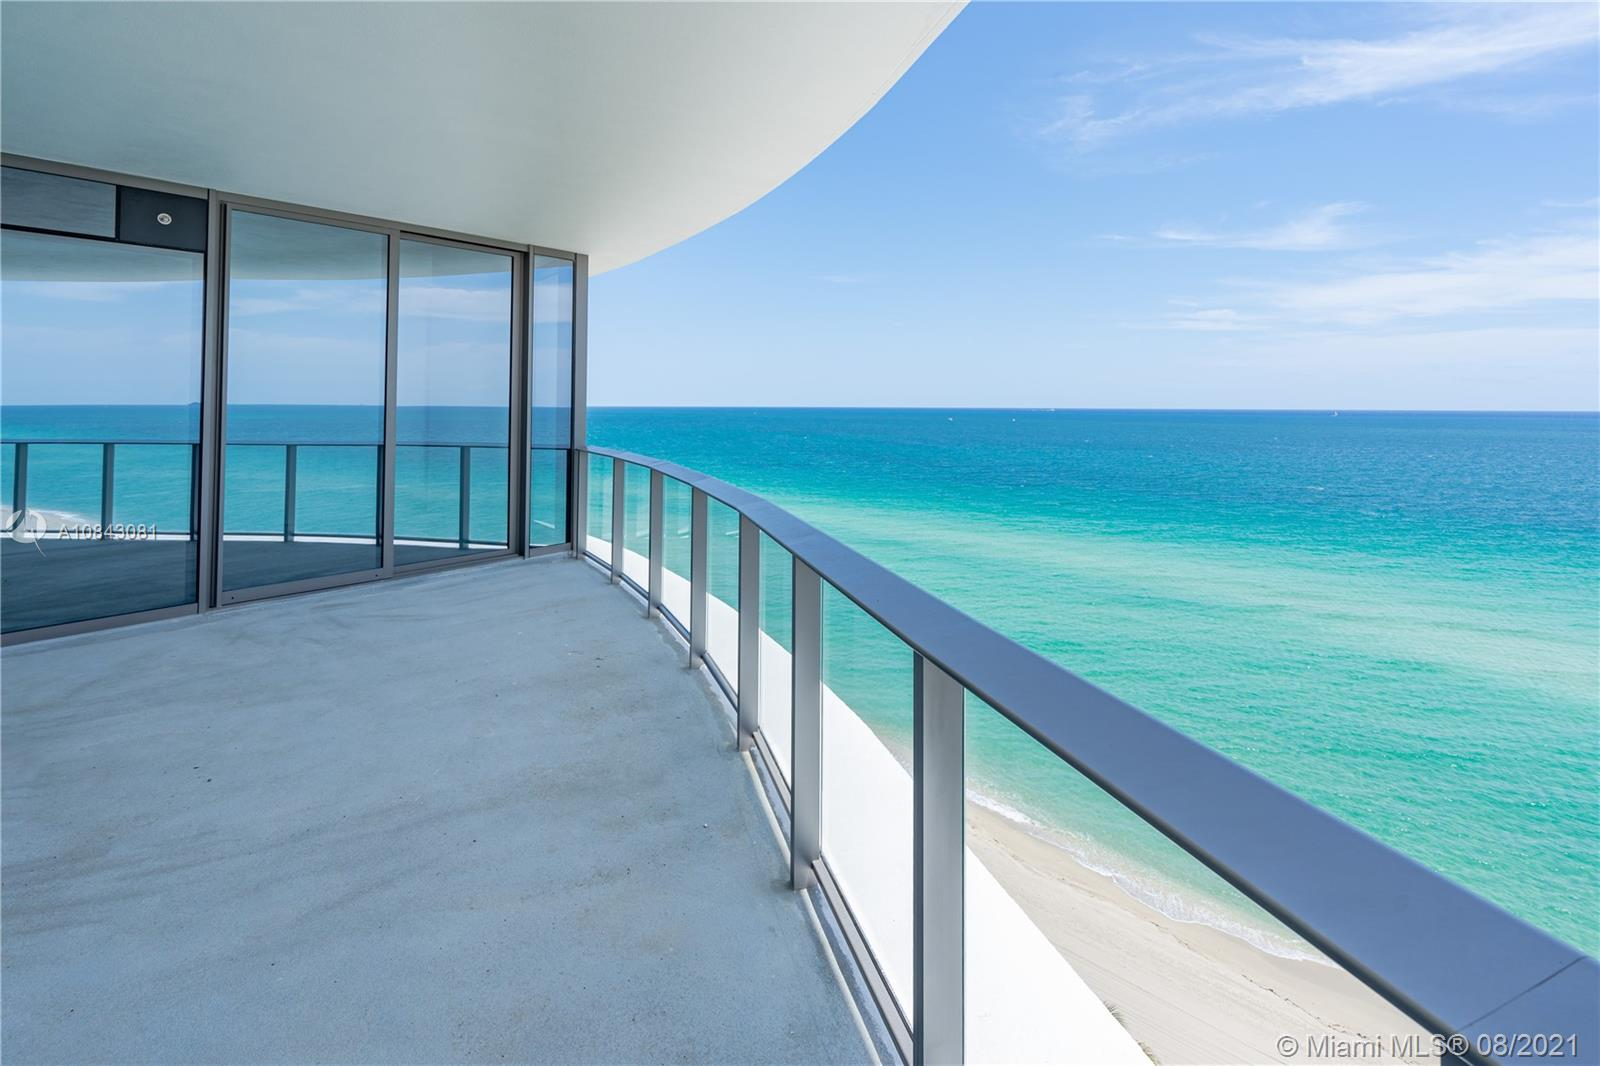 Glamorous new RITZ-CARLTON RESIDENCES at the Beach. 3 bed + DEN / 3.5 bath with direct views to the OCEAN. Flow-through unit with 10' floor-ceiling glass. Snaidero kitchen cabinetry, quartz countertops, Gaggenau appliances, wine cooler/coffee maker. Impeccable bathrooms. Private elevator/foyer. Smart home tech ready, free WiFi/cable and as many parking as you need. Known for its legendary service, AMENITIES include: Beach/pool attendants, hot tubs, restaurant (room service), bar, business center, kids club, fitness/wellness center and 8 family suites (no hotel on premises). Security/Concierge/Valet. Free breakfast every day! Live in desirable SUNNY ISLES BEACH, walking distance to restaurants. * No 2.3% developer fee. Floors/ Closets/ Blinds negotiable. Same Ocean view as upper levels *